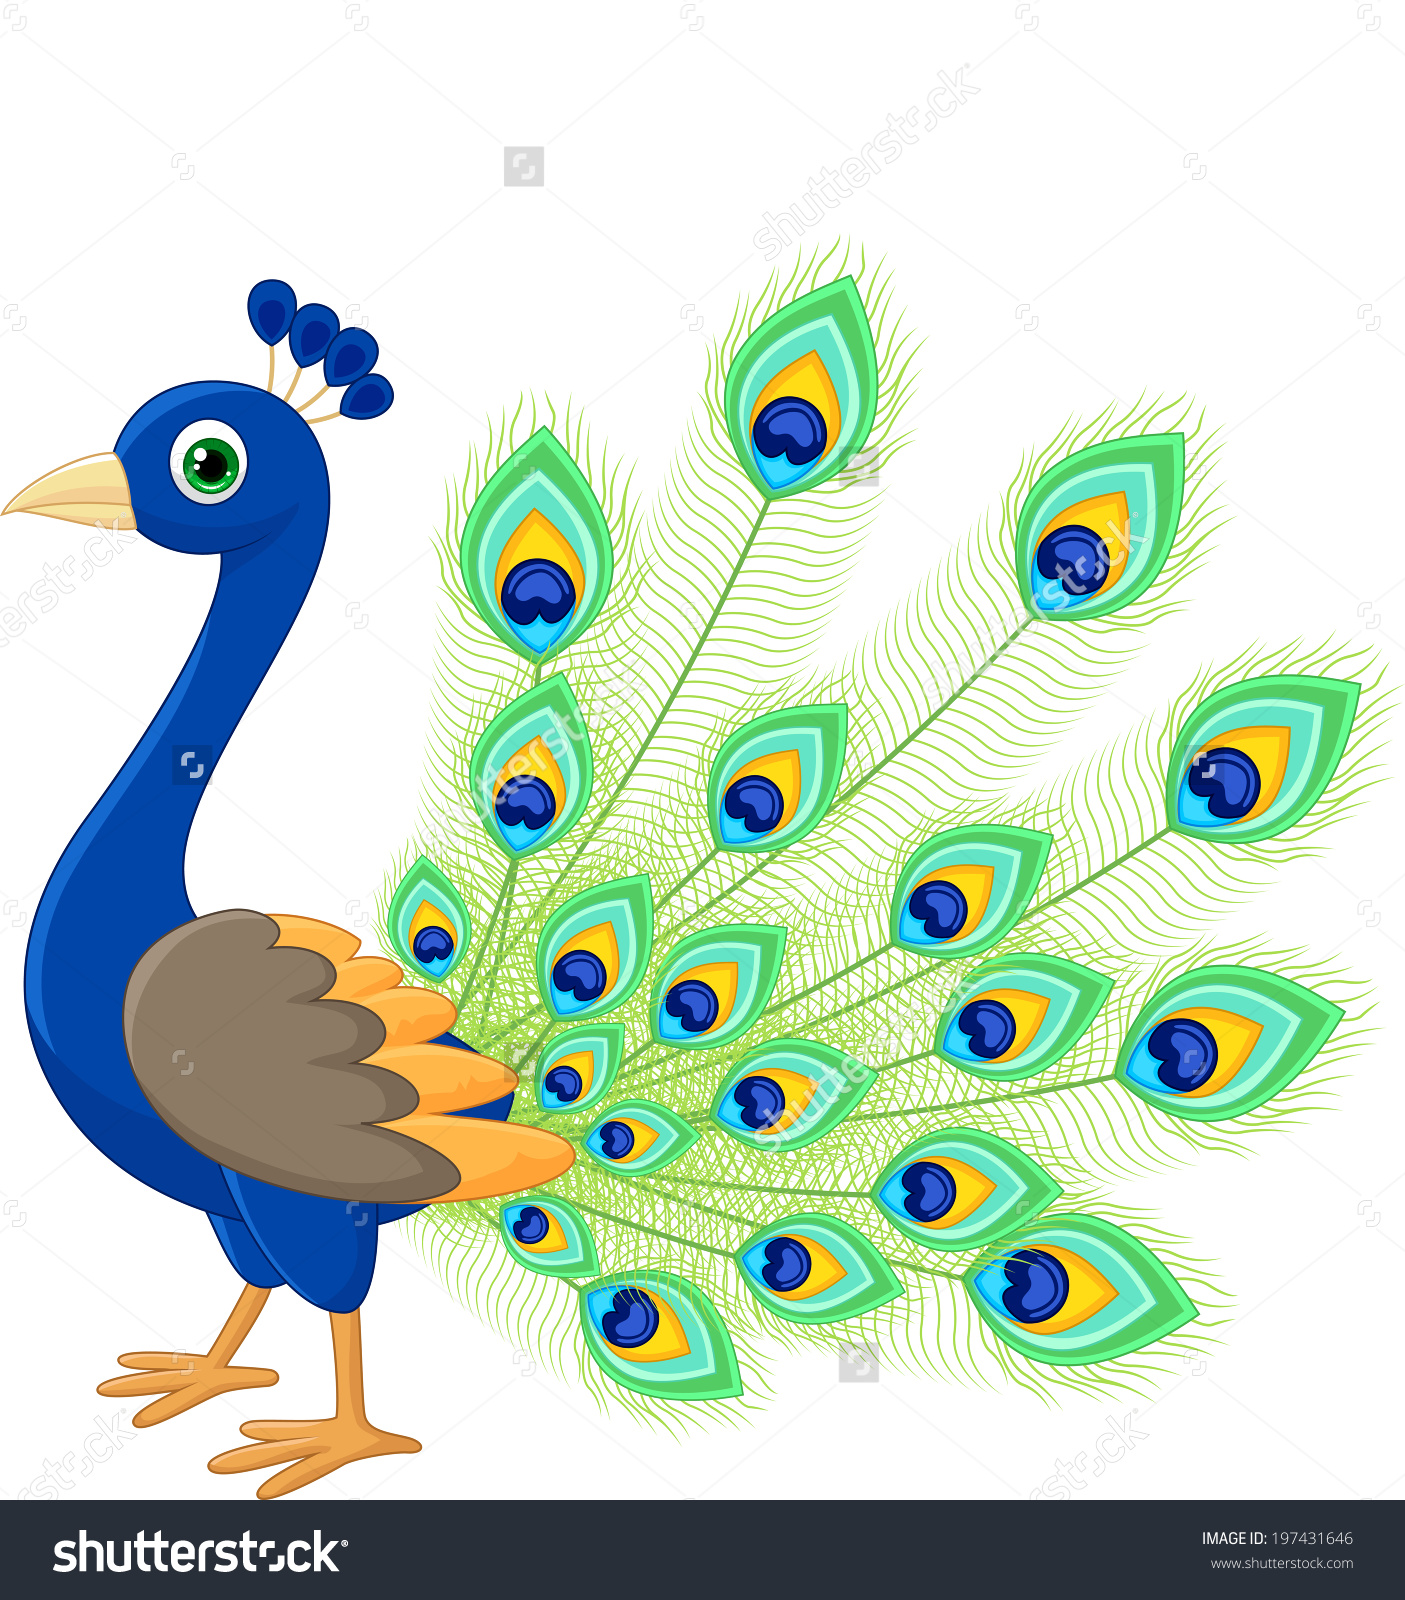 Peacock images clip art.